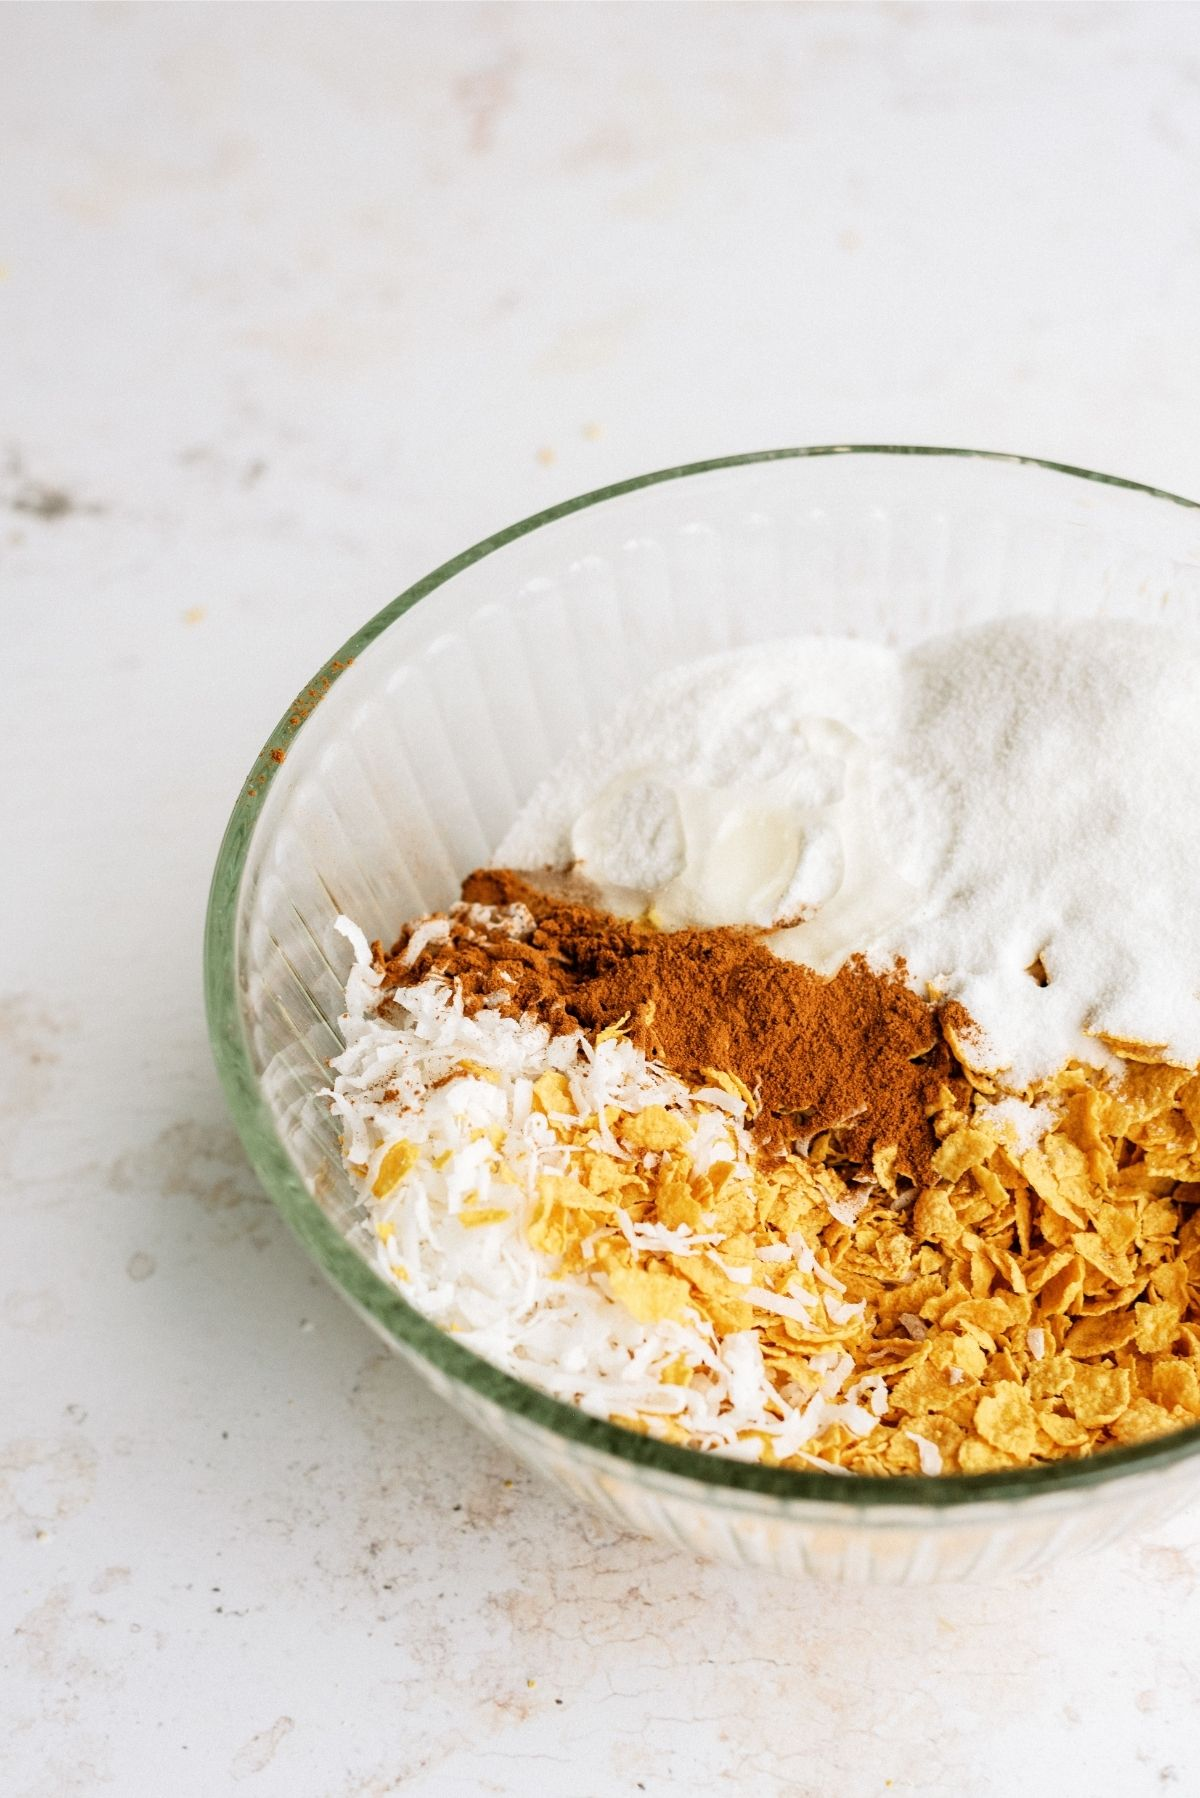 Ingredients for Homemade Fried Ice Cream in glass bowl